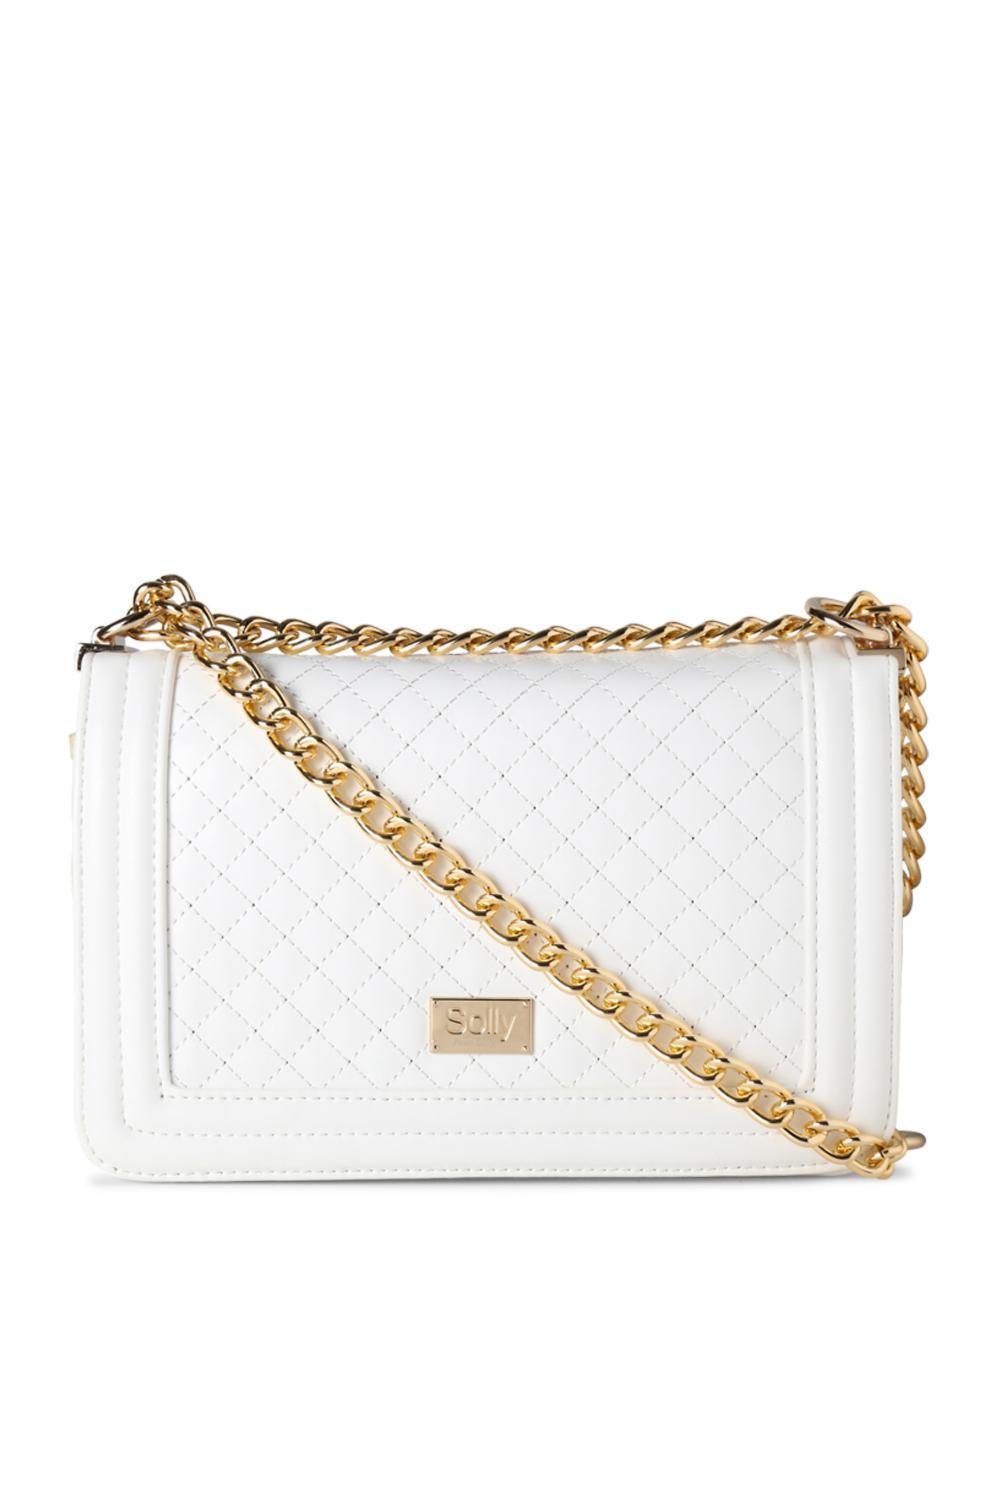 38f74d8433b Solly Fashion Accessories, Allen Solly White Sling Bag for Women at  Allensolly.com